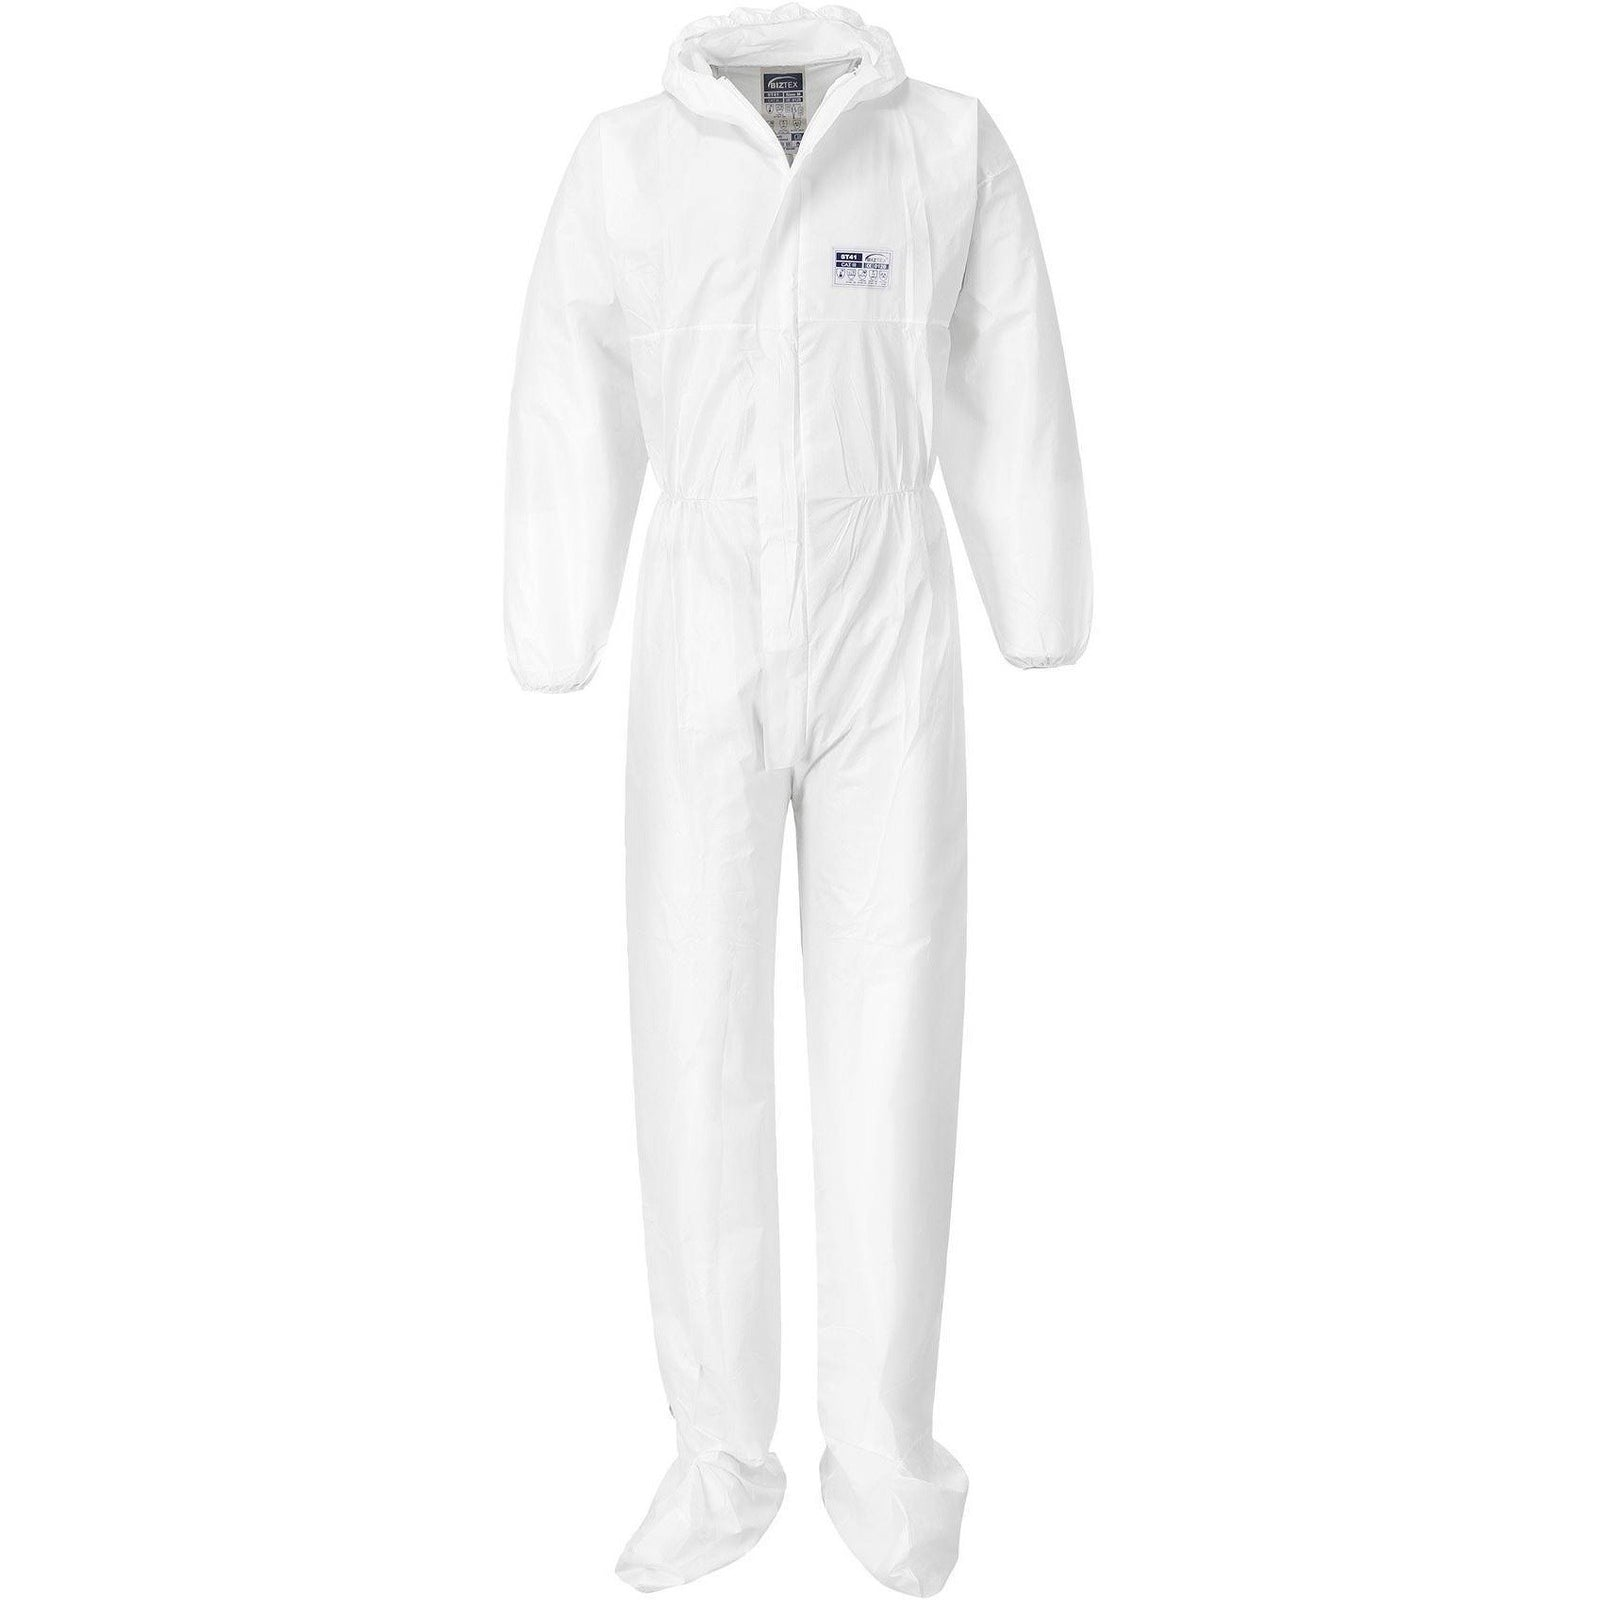 Portwest BizTex Microporous Coverall with Boot Covers Type 6/5 ST41 - reid outdoors